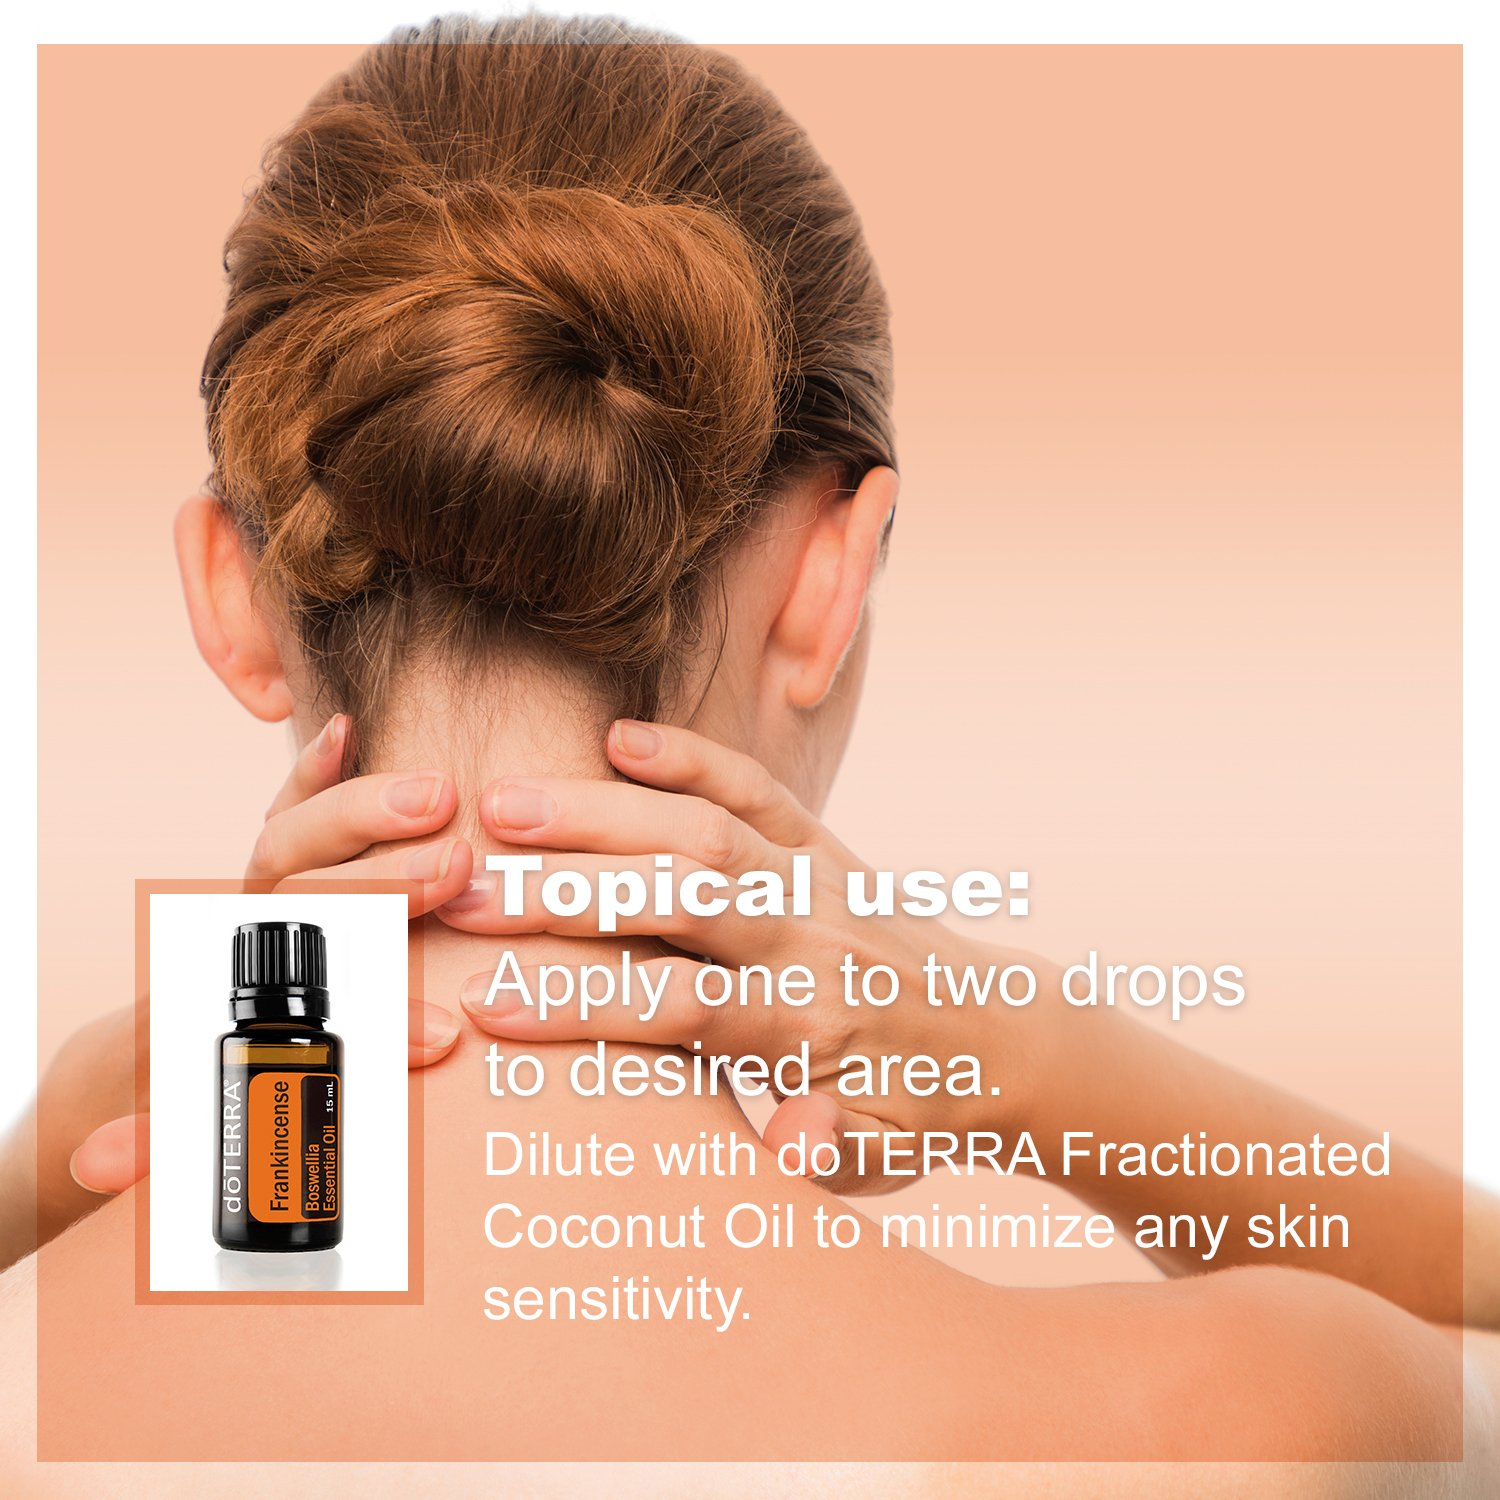 doTERRA Frankincense Essential Oil - Supports Healthy Cellular Function, Aroma Promotes Relaxing Feelings, Supports Healthy Immune and Nervous Function; For Diffusion, Internal, or Topical Use - 15 ml by DoTerra (Image #6)